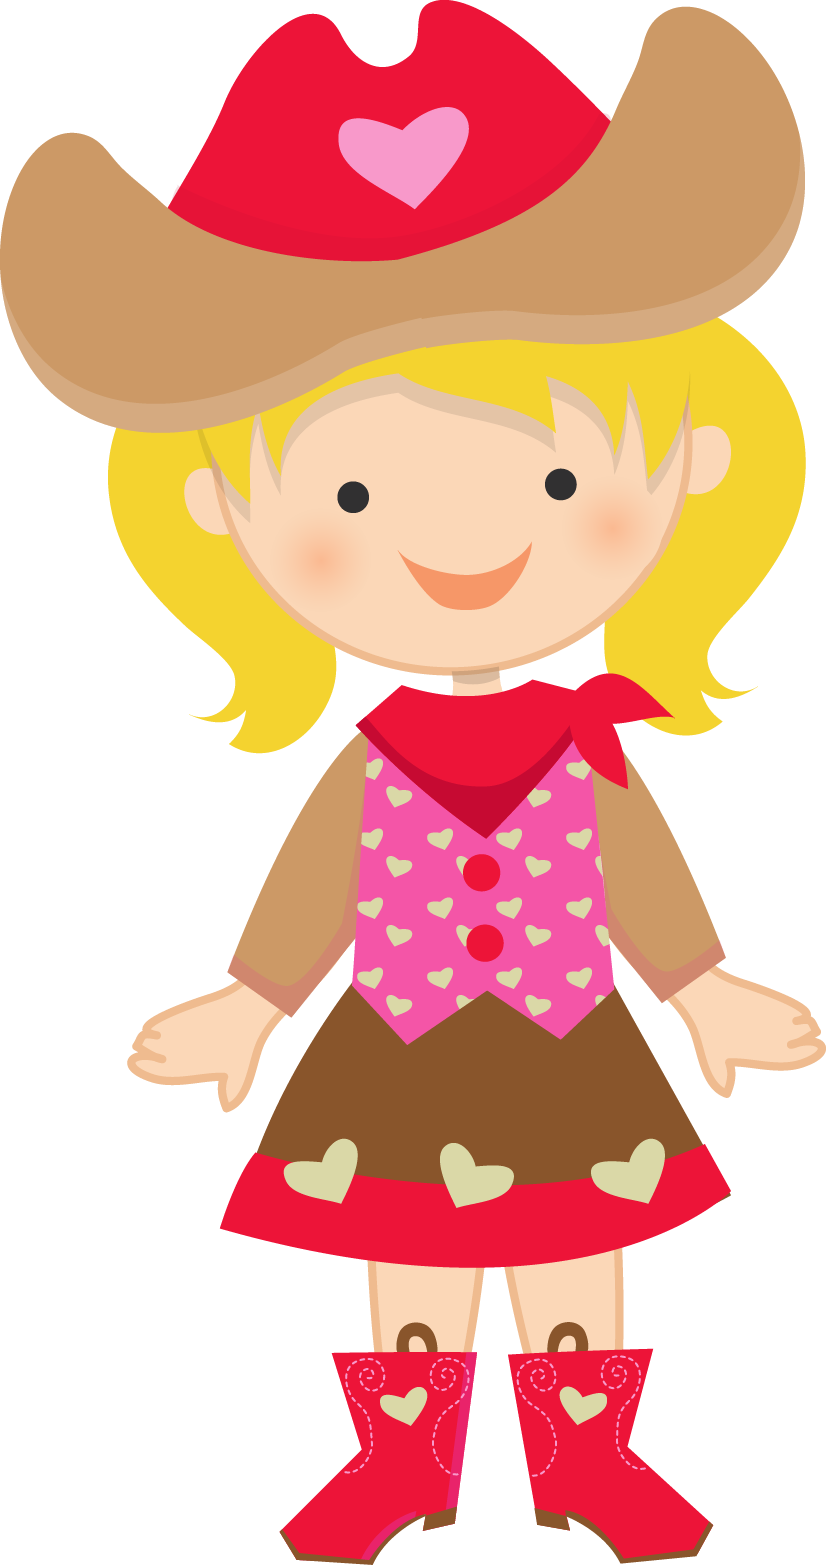 pin by dennise ruiz on clip art pinterest cowboys clip art and rh pinterest com cowgirl clipart black and white cowgirl clip art western